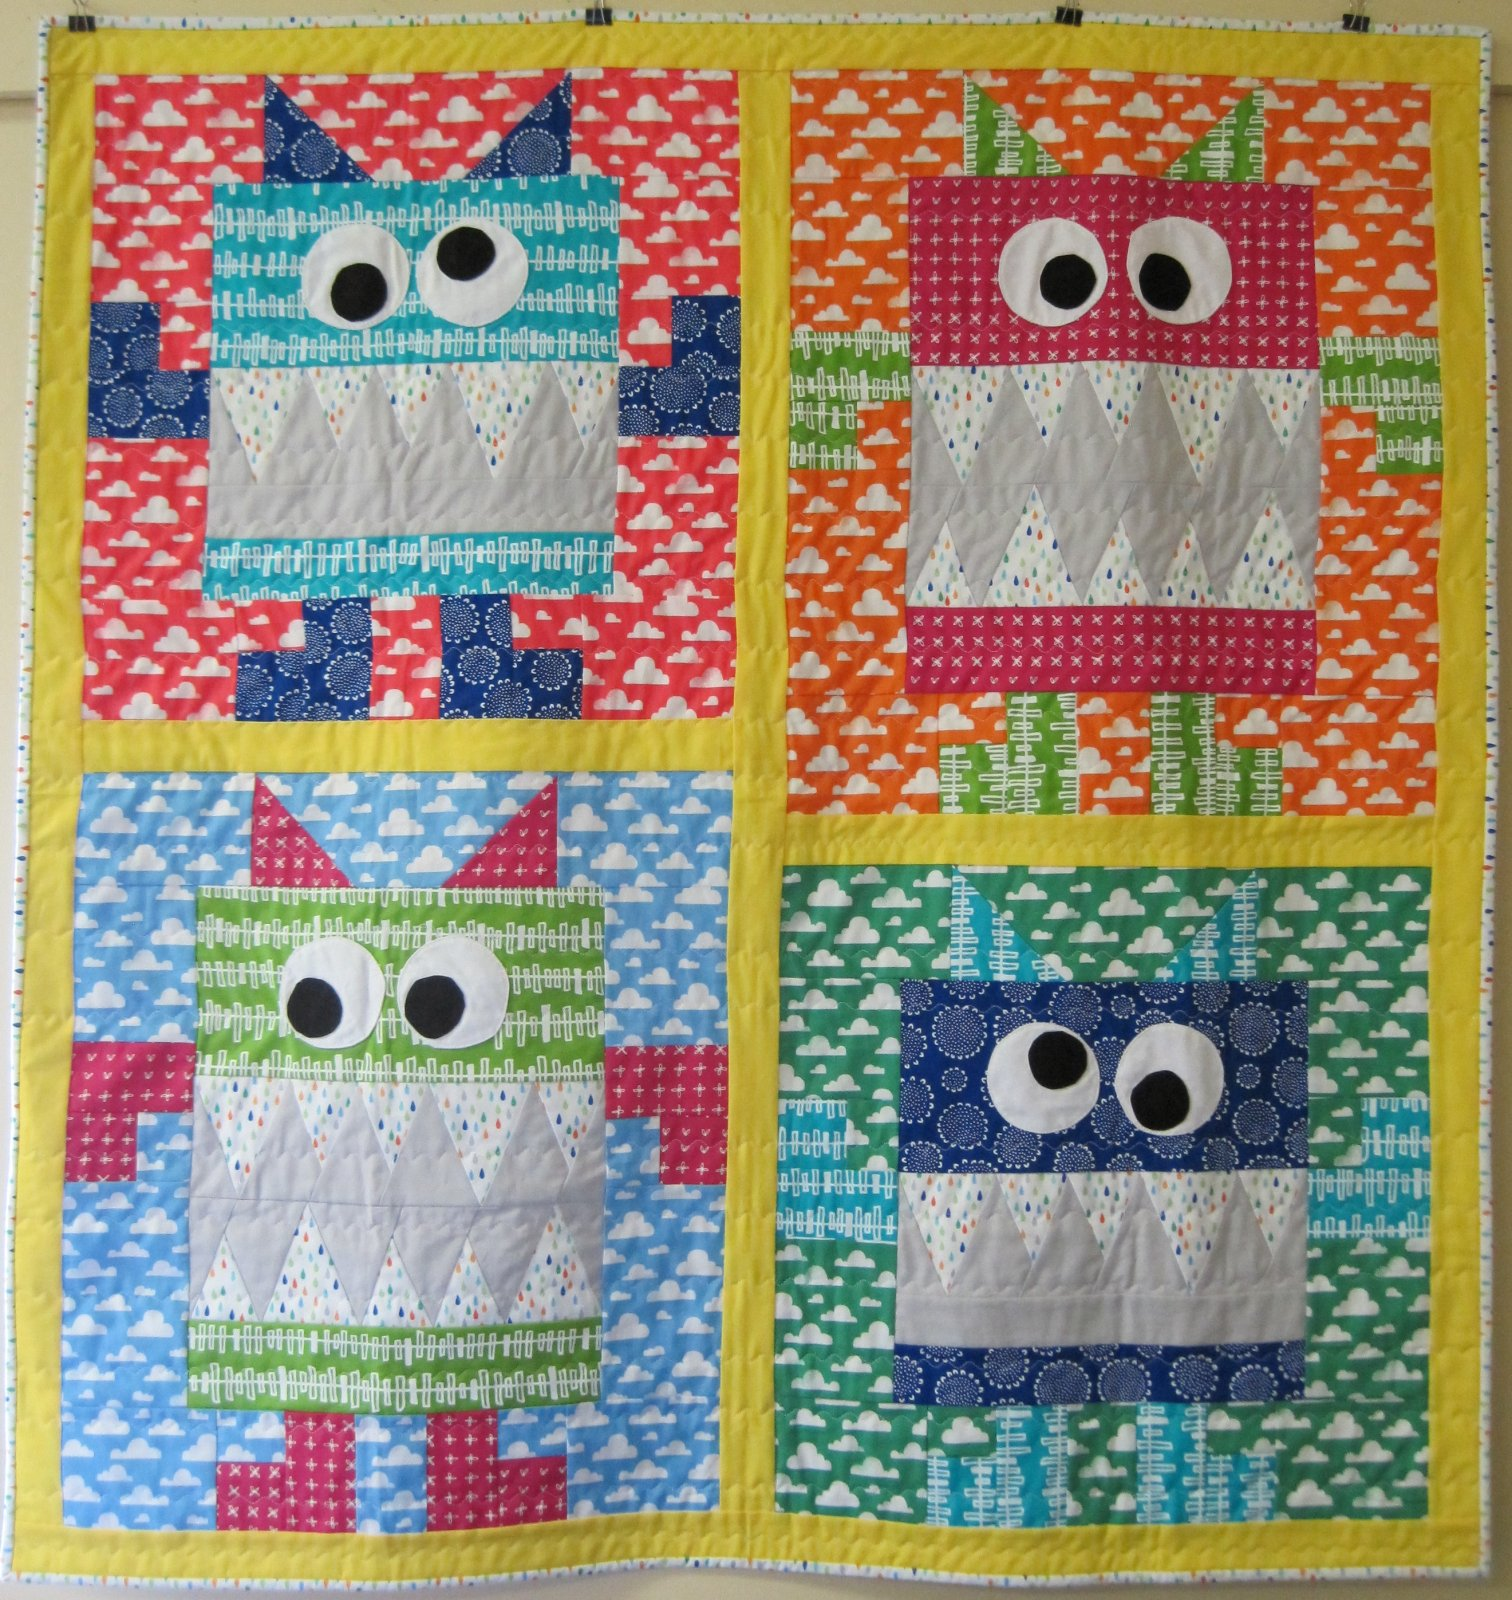 No Monsters Allowed Quilt